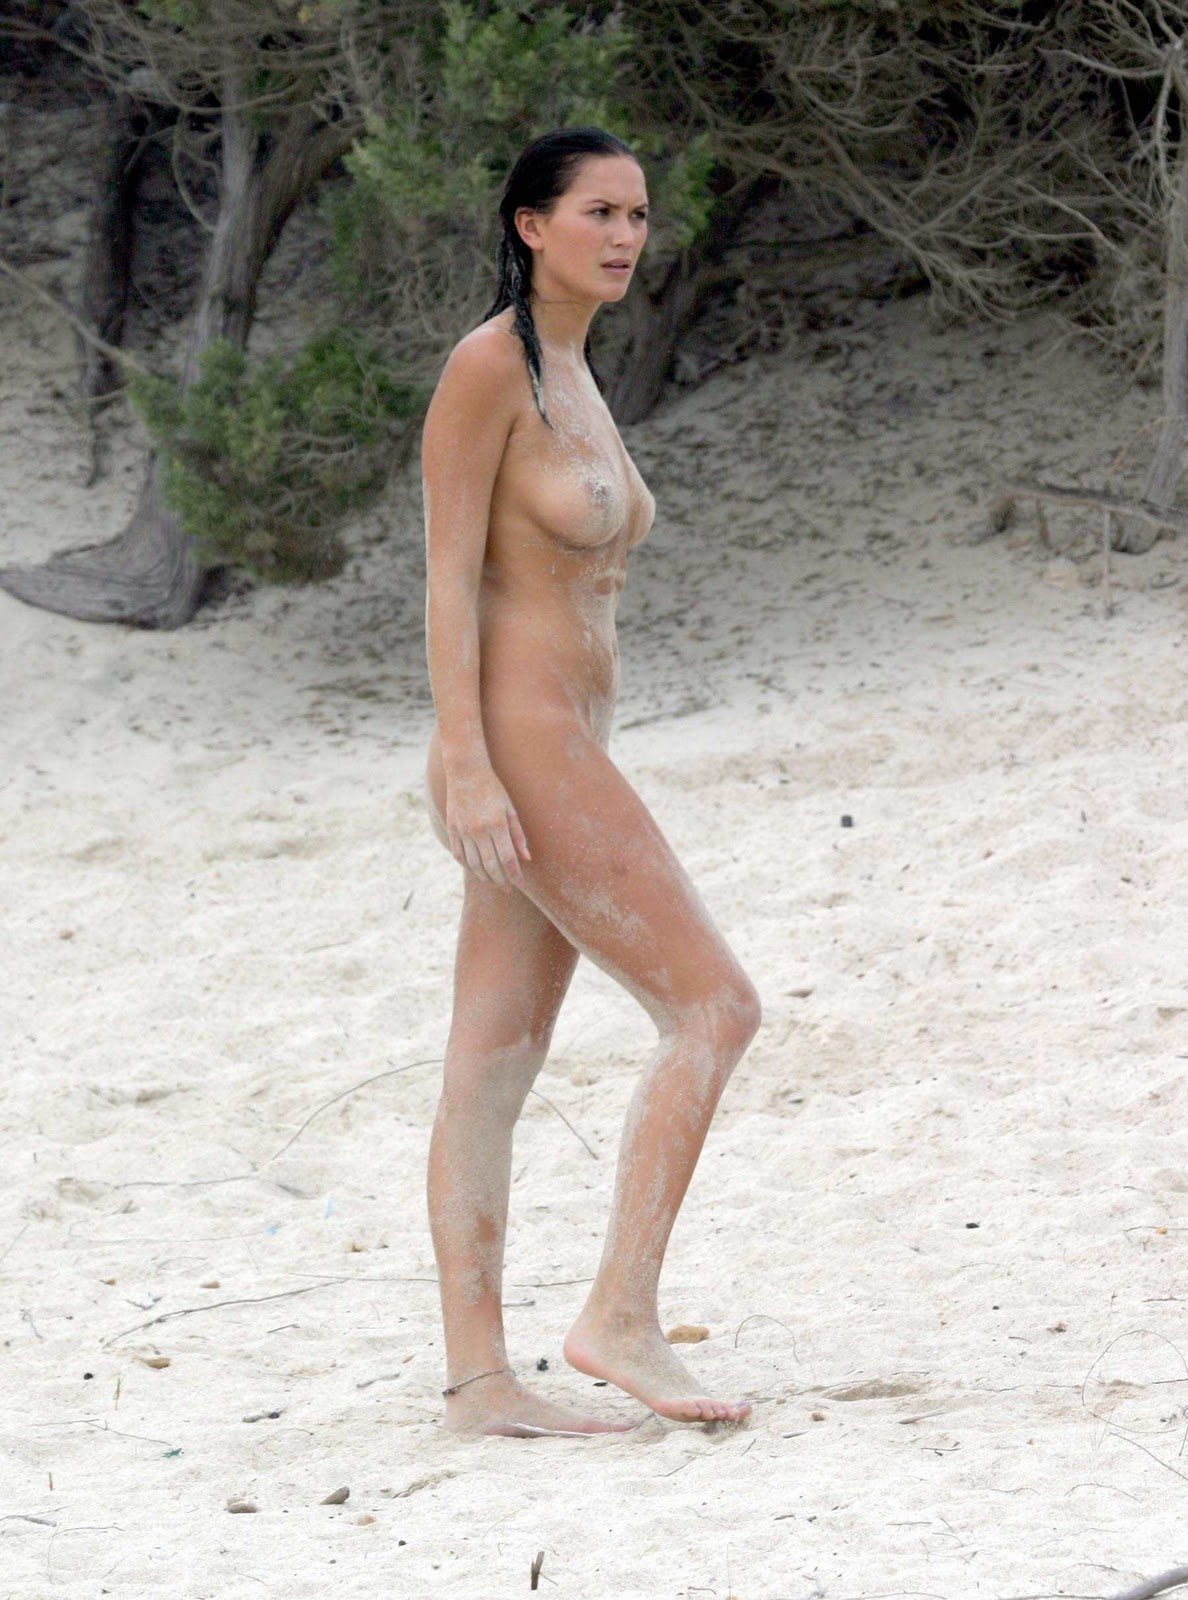 Lucy Clarkson Nude Sandy Candids And Topless Swim At The Beach Gutteruncensored Com